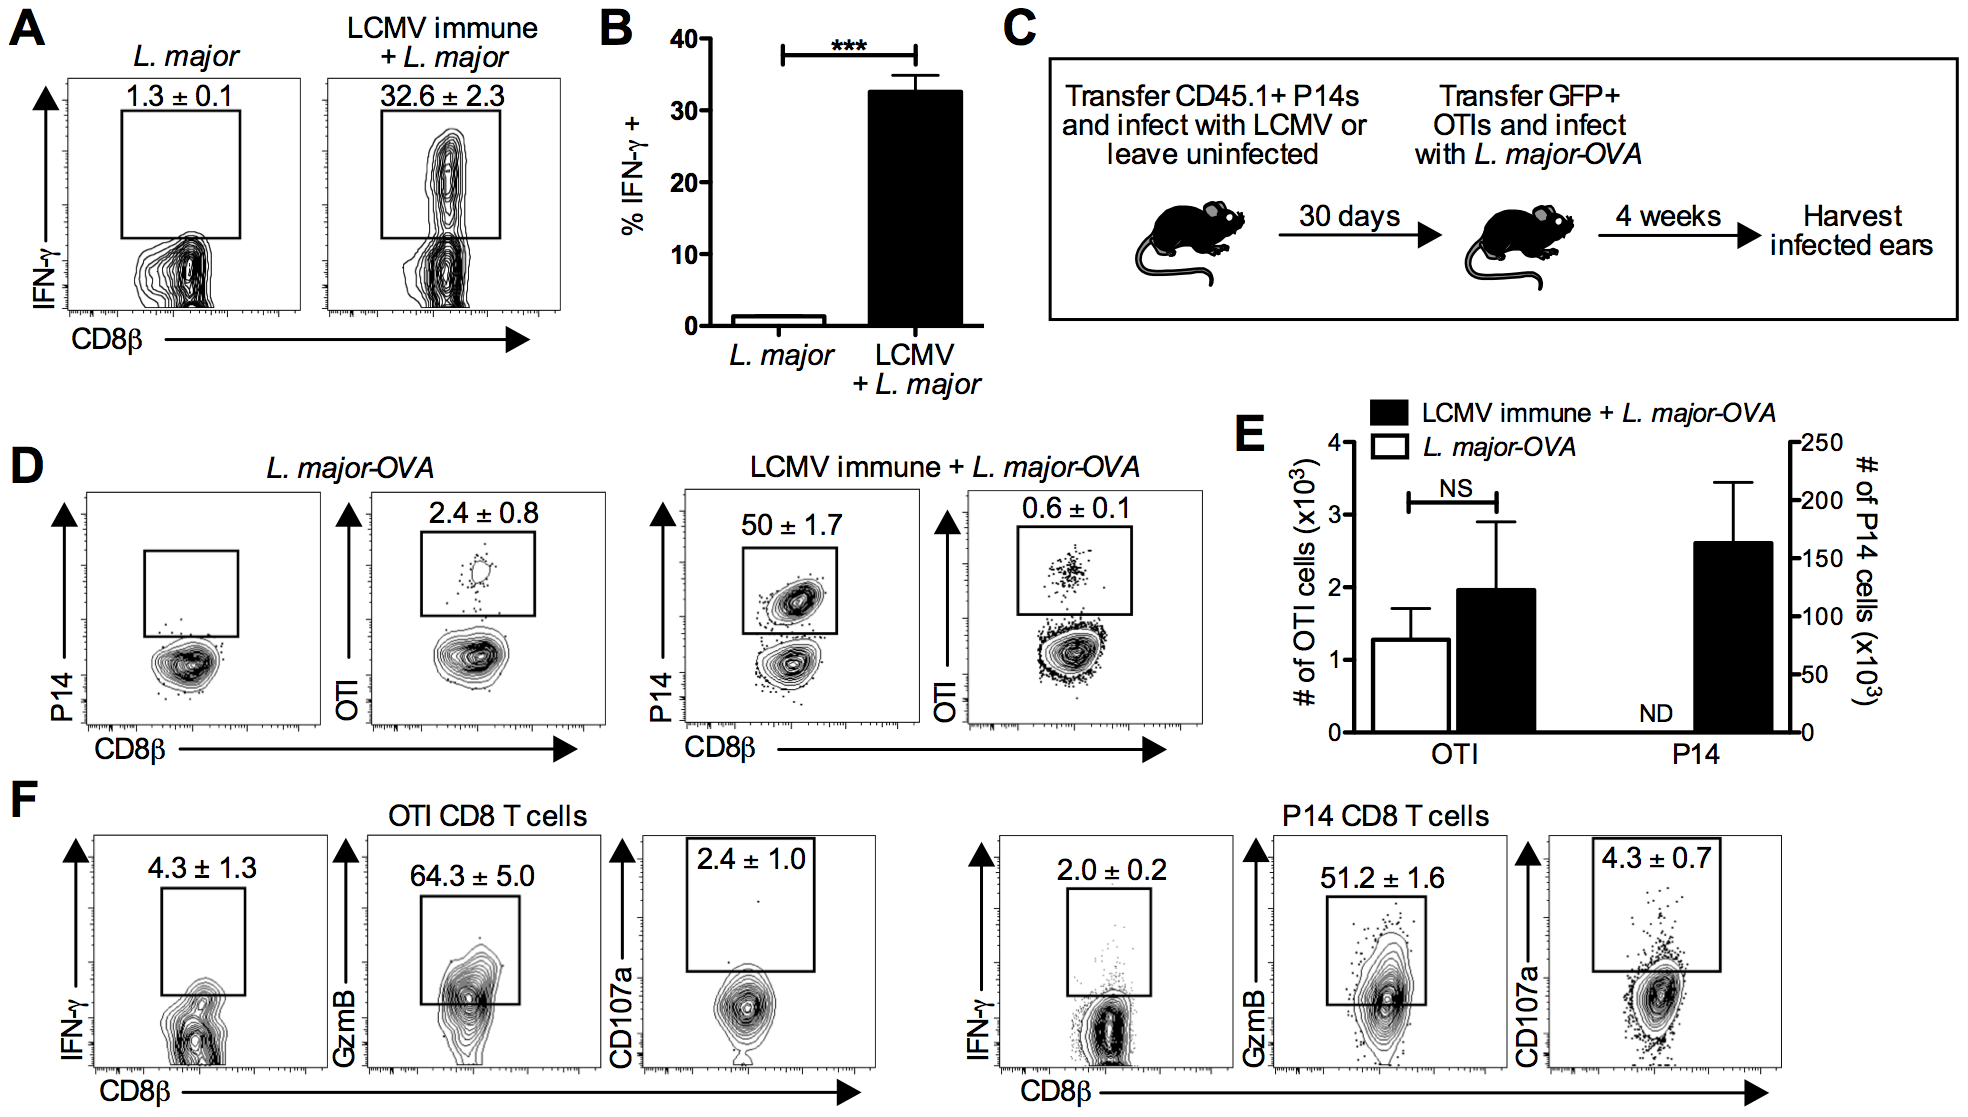 LCMV specific CD8 T cells are present in the leishmanial lesion and express gzmB but low levels of IFN-γ.